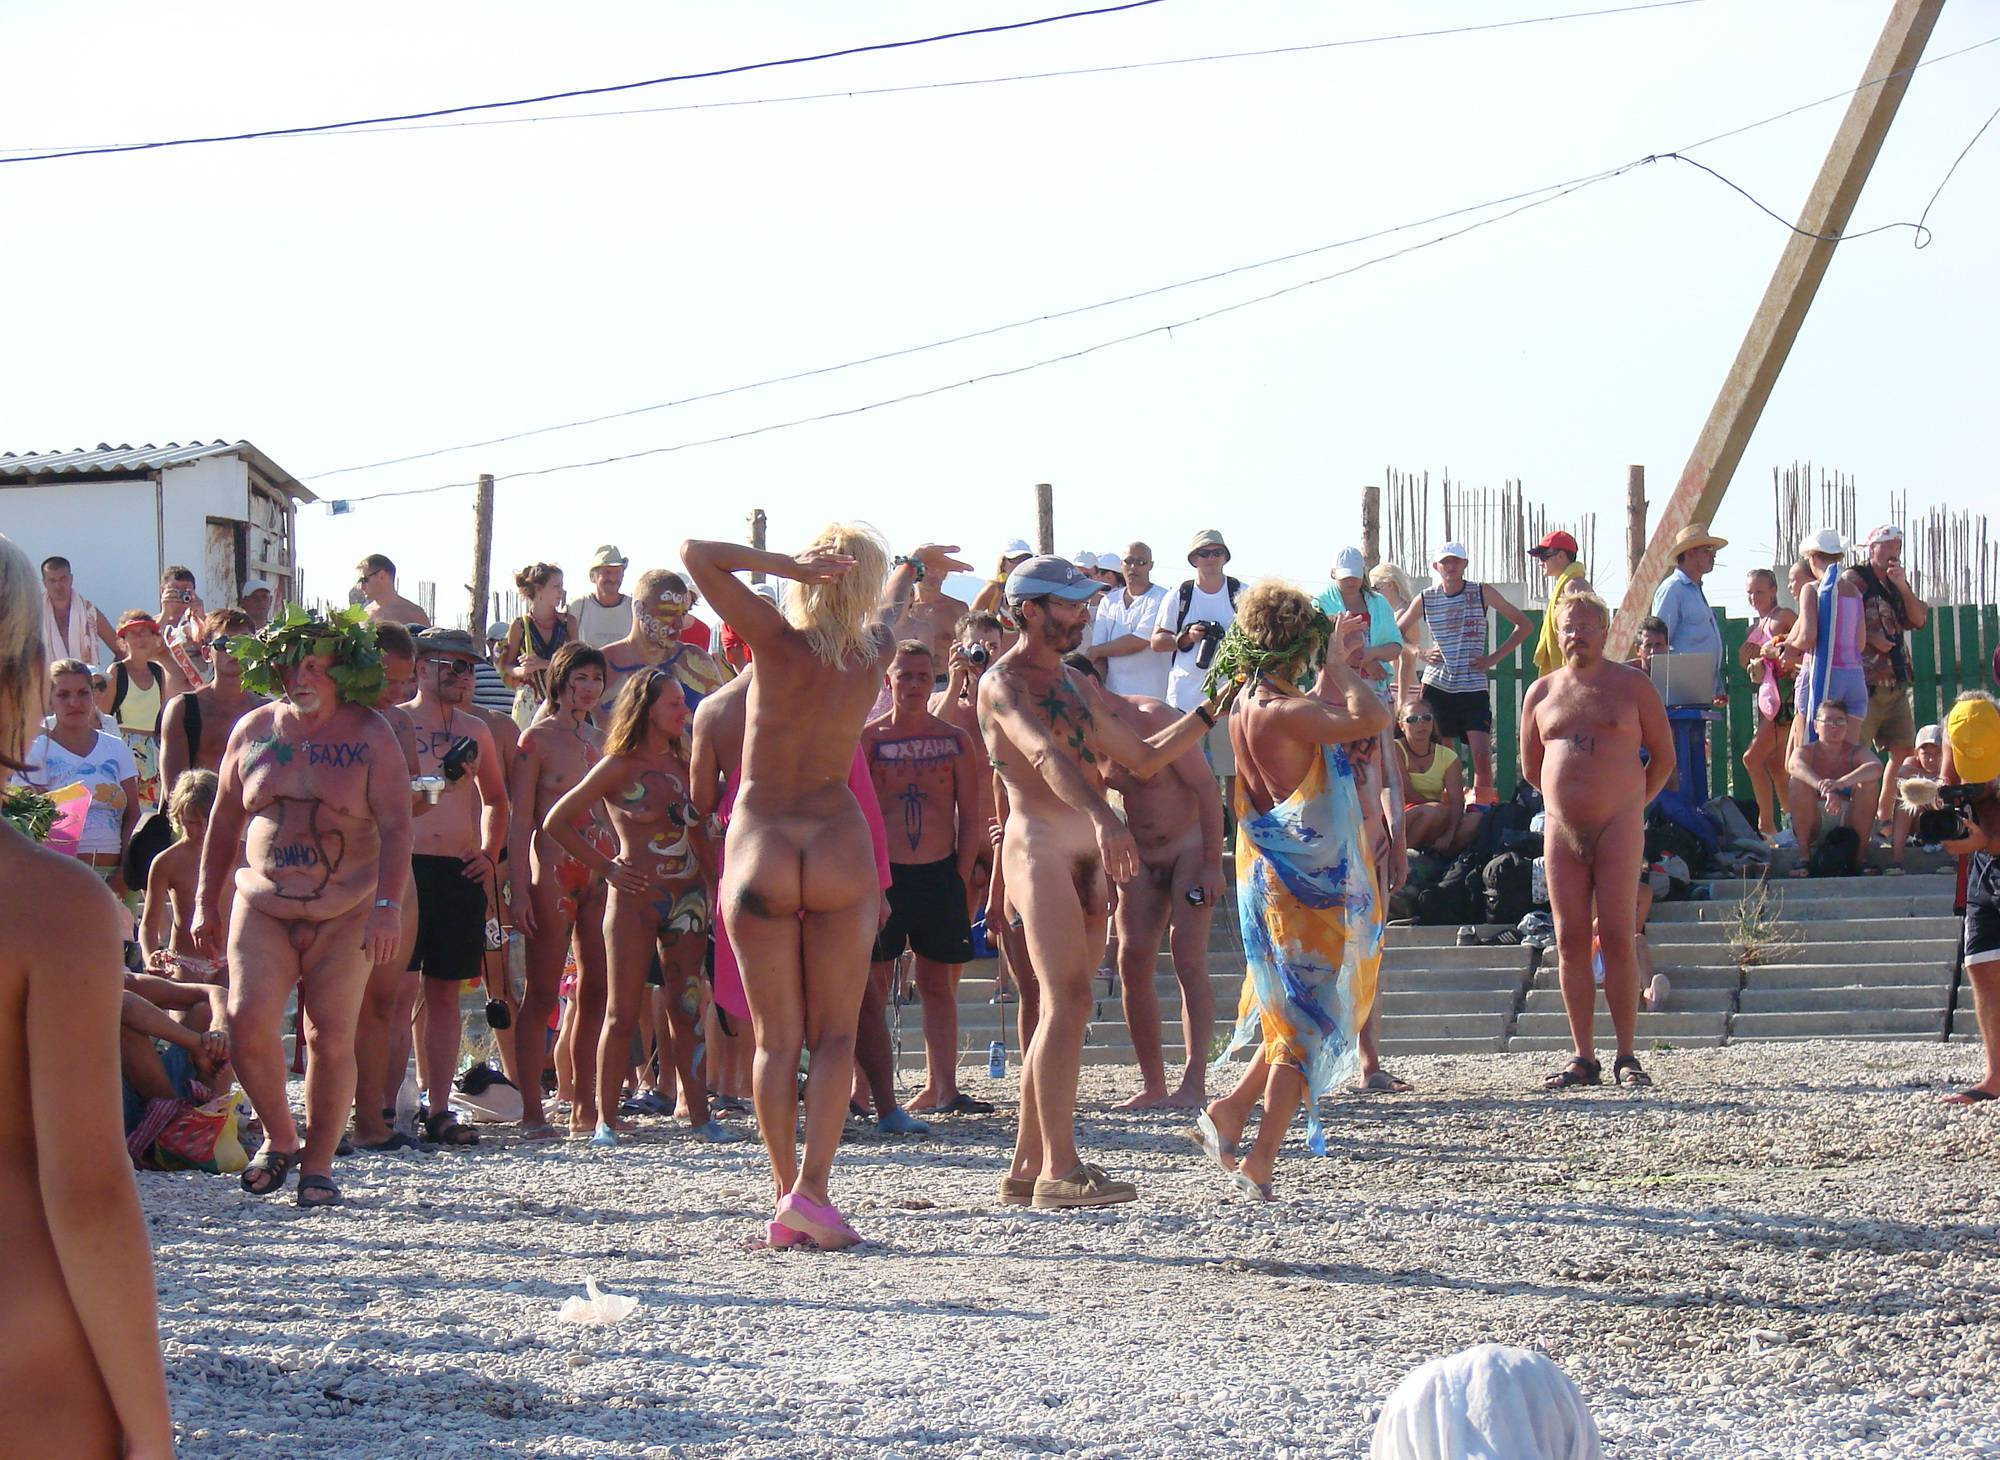 Nudist Photos Neptune Day Dance Views - 1